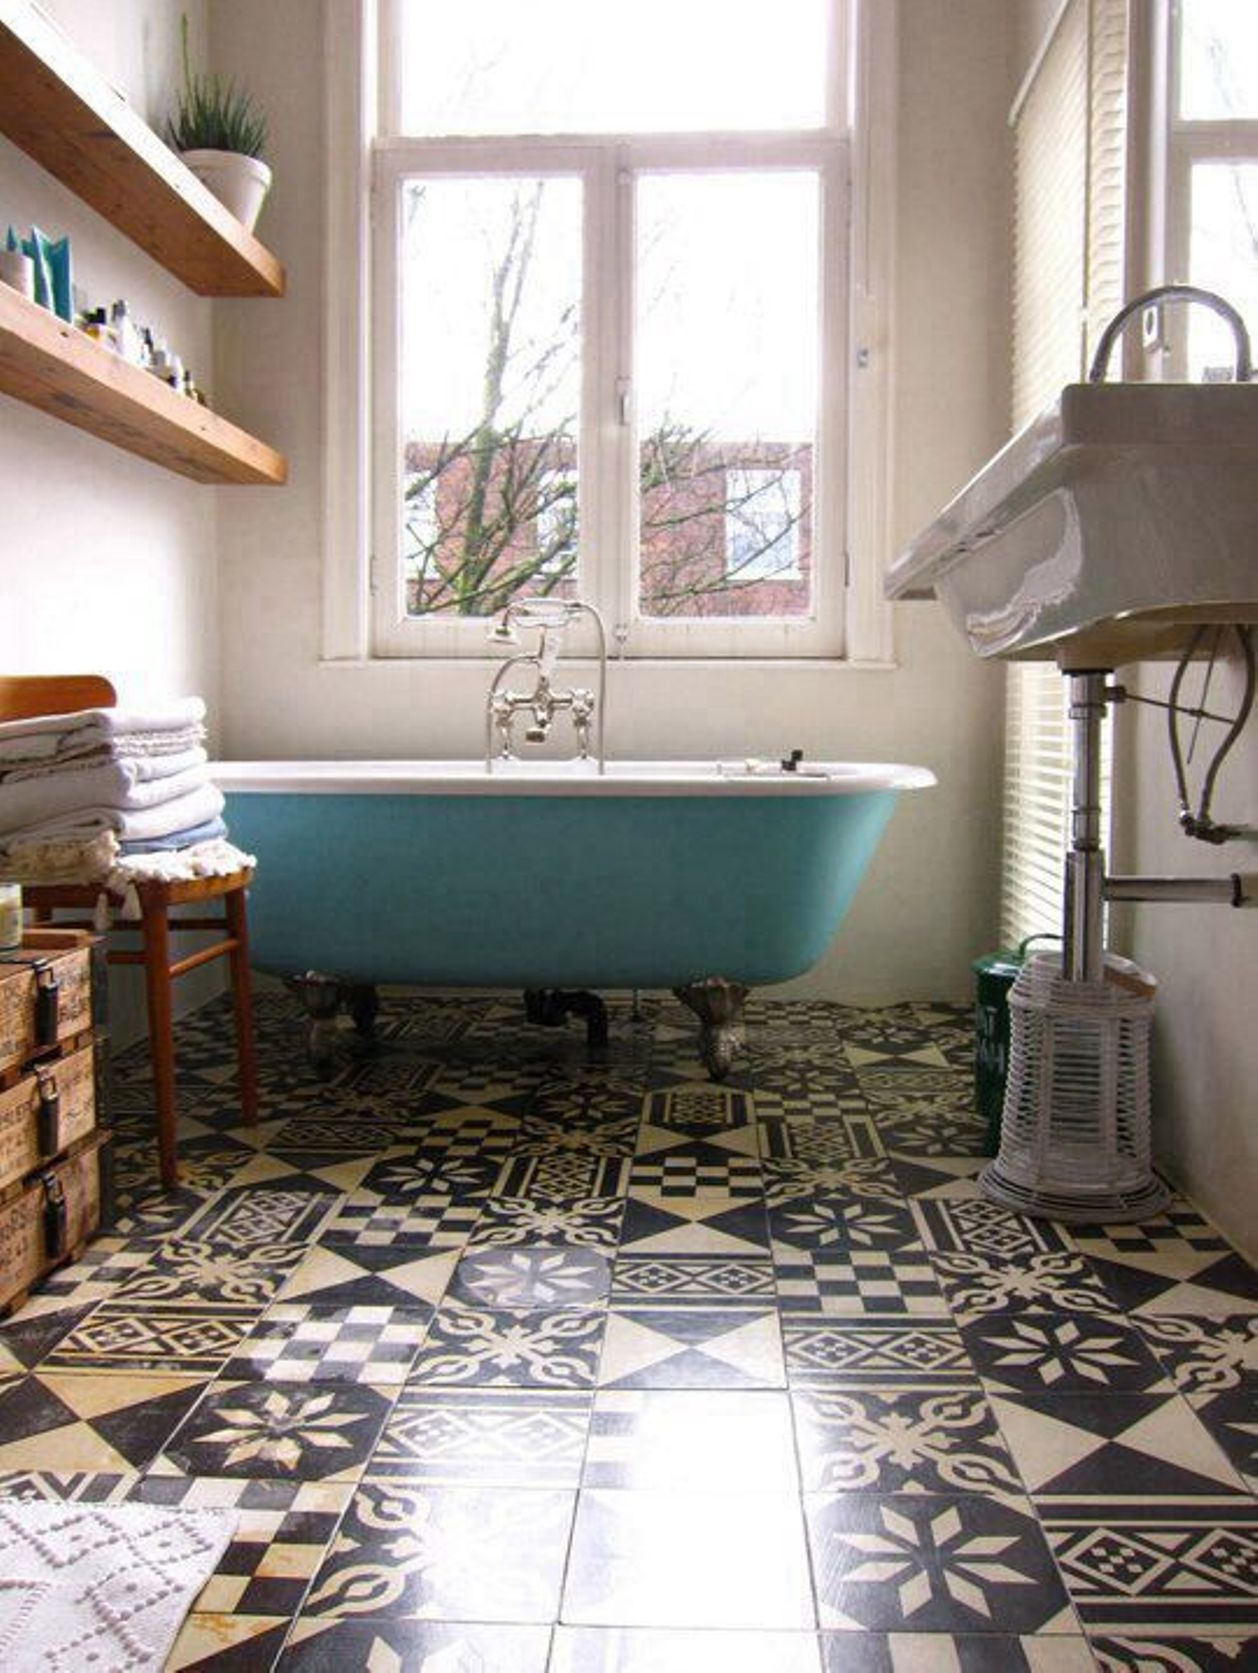 20 great pictures and ideas of vintage bathroom floor tile patterns for Vintage bathroom designs